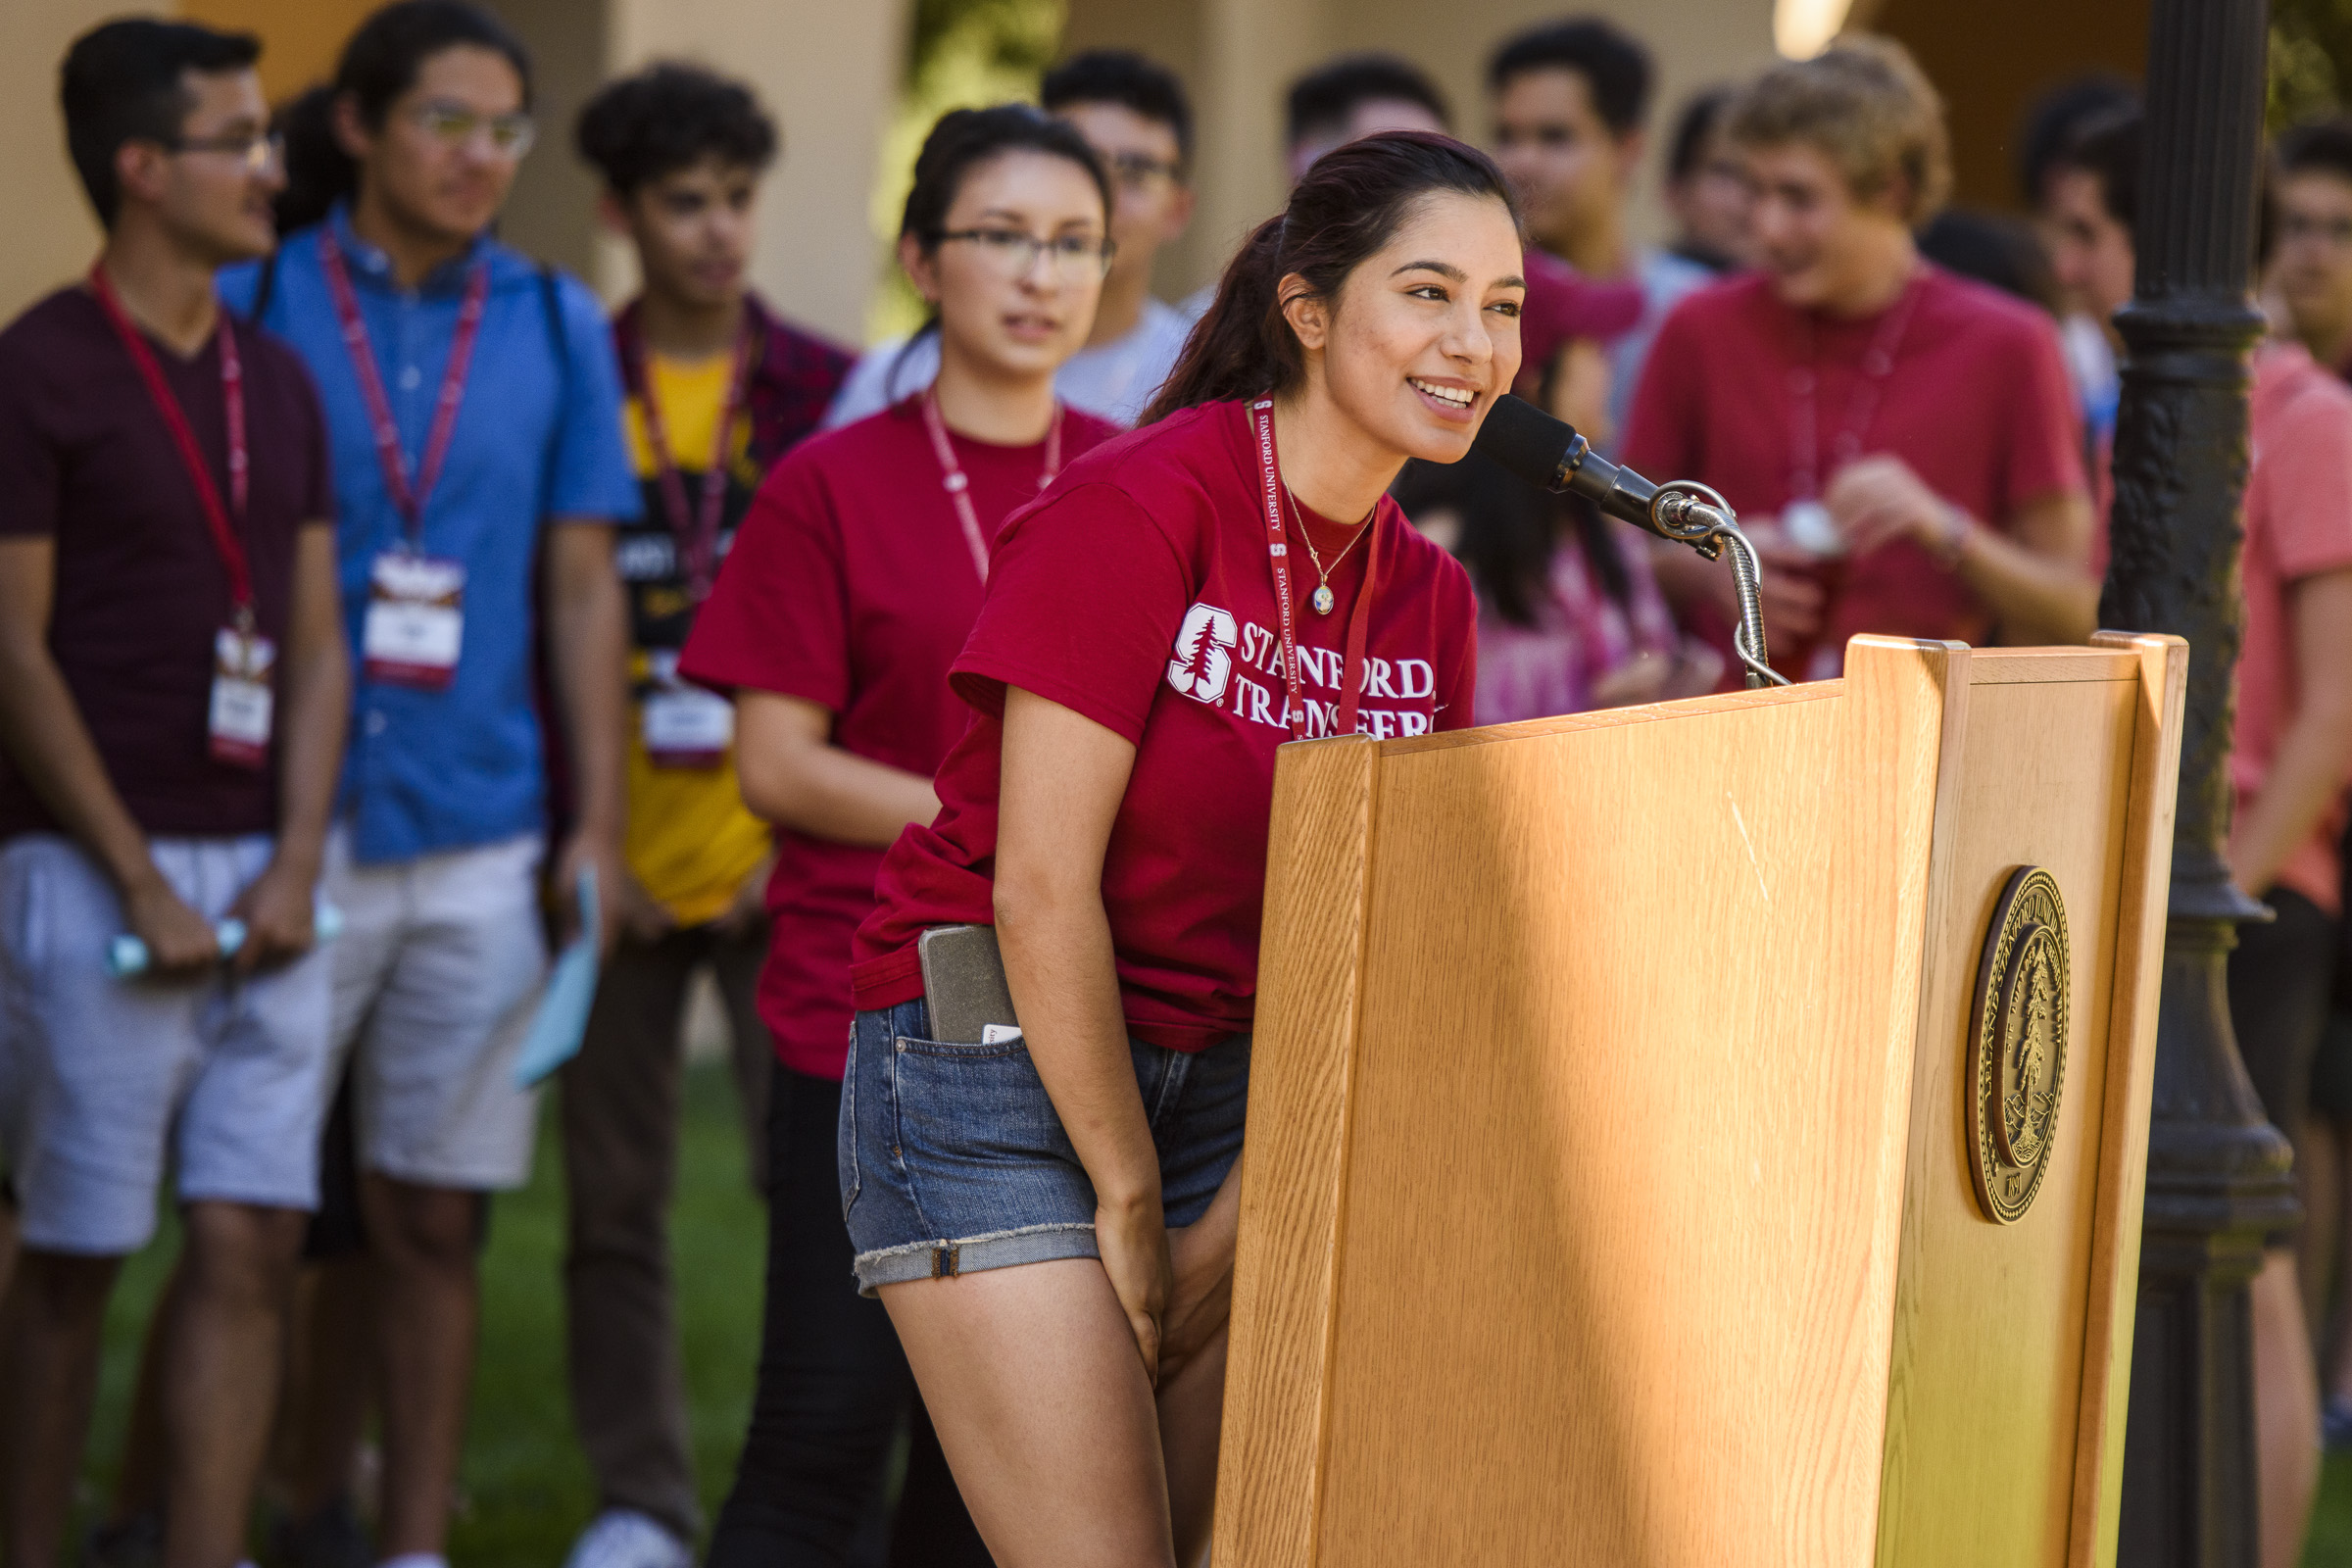 Transfer student Danya Adib-Azpeitia was one of a large group of students who introduced themselves to the audience at the Chicanx/Latinx New Student and Family Welcome.